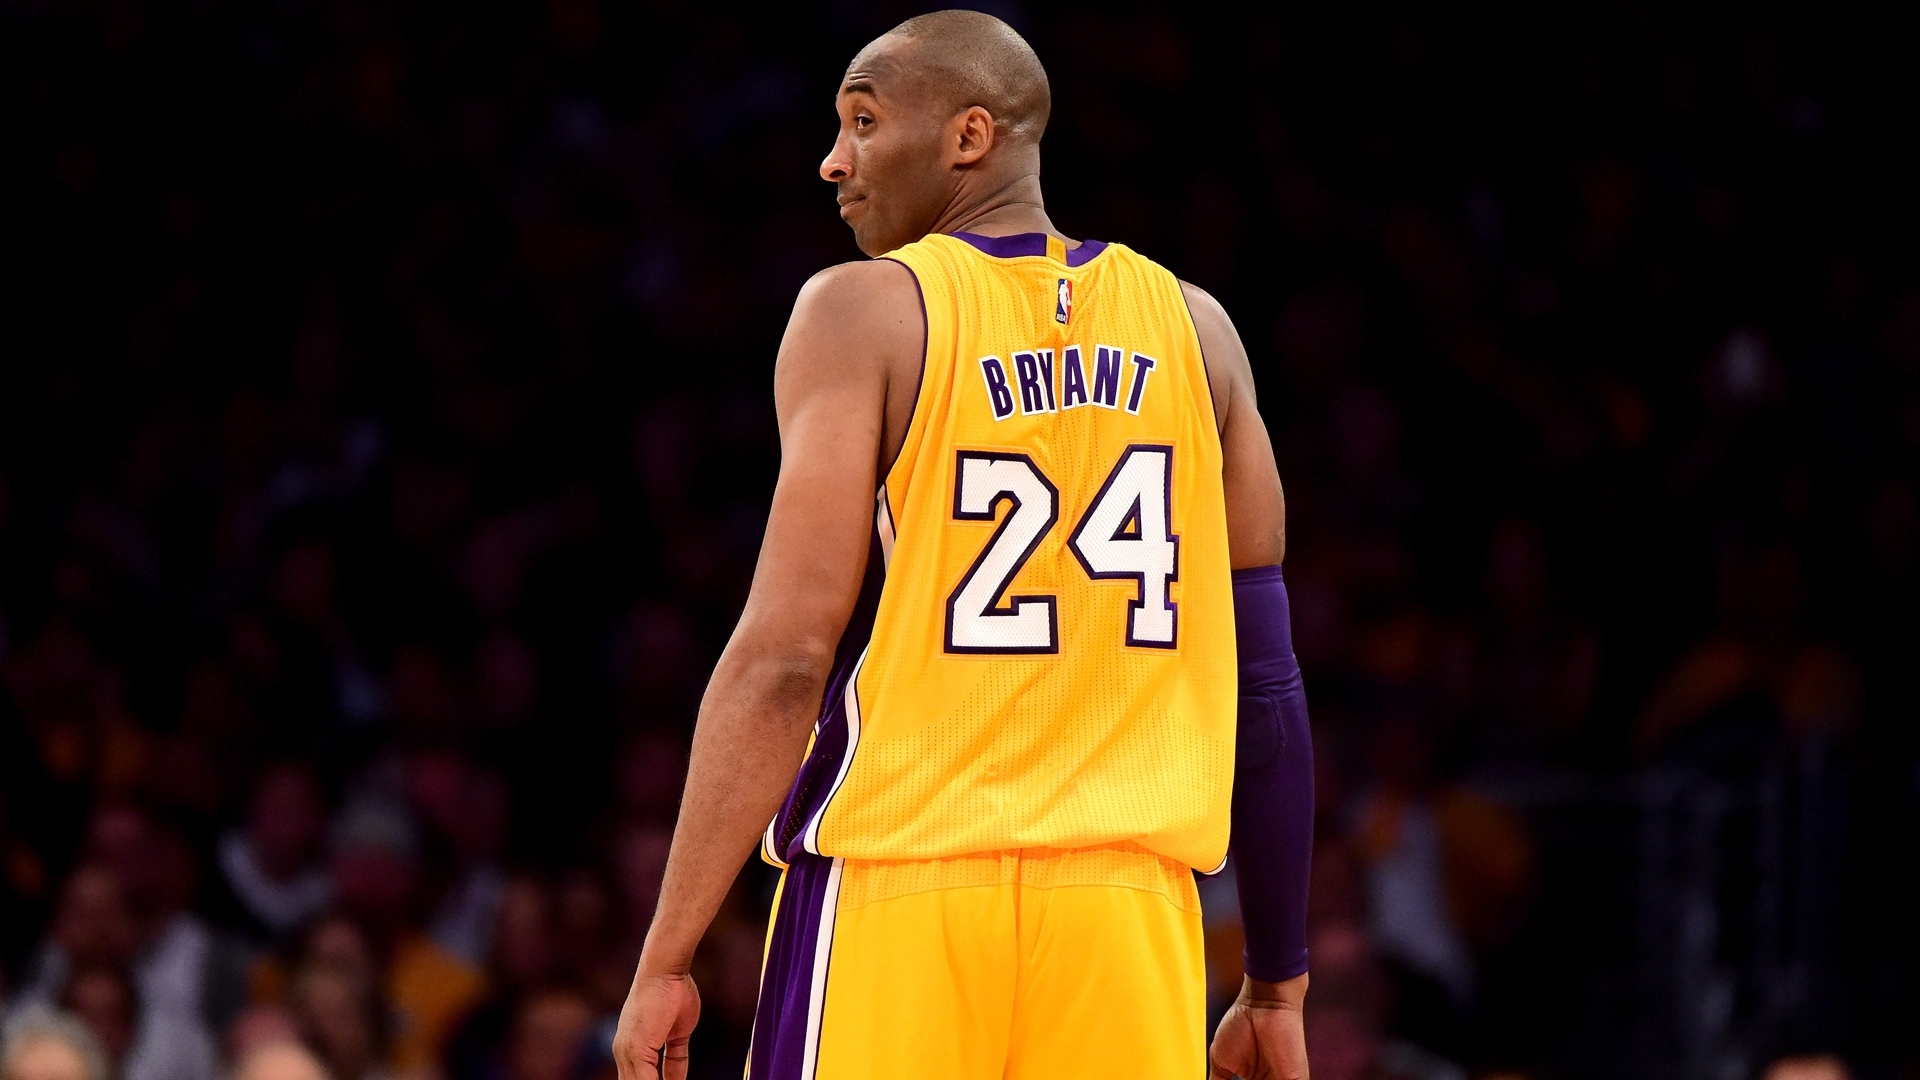 kobe bryant download free backgrounds hd